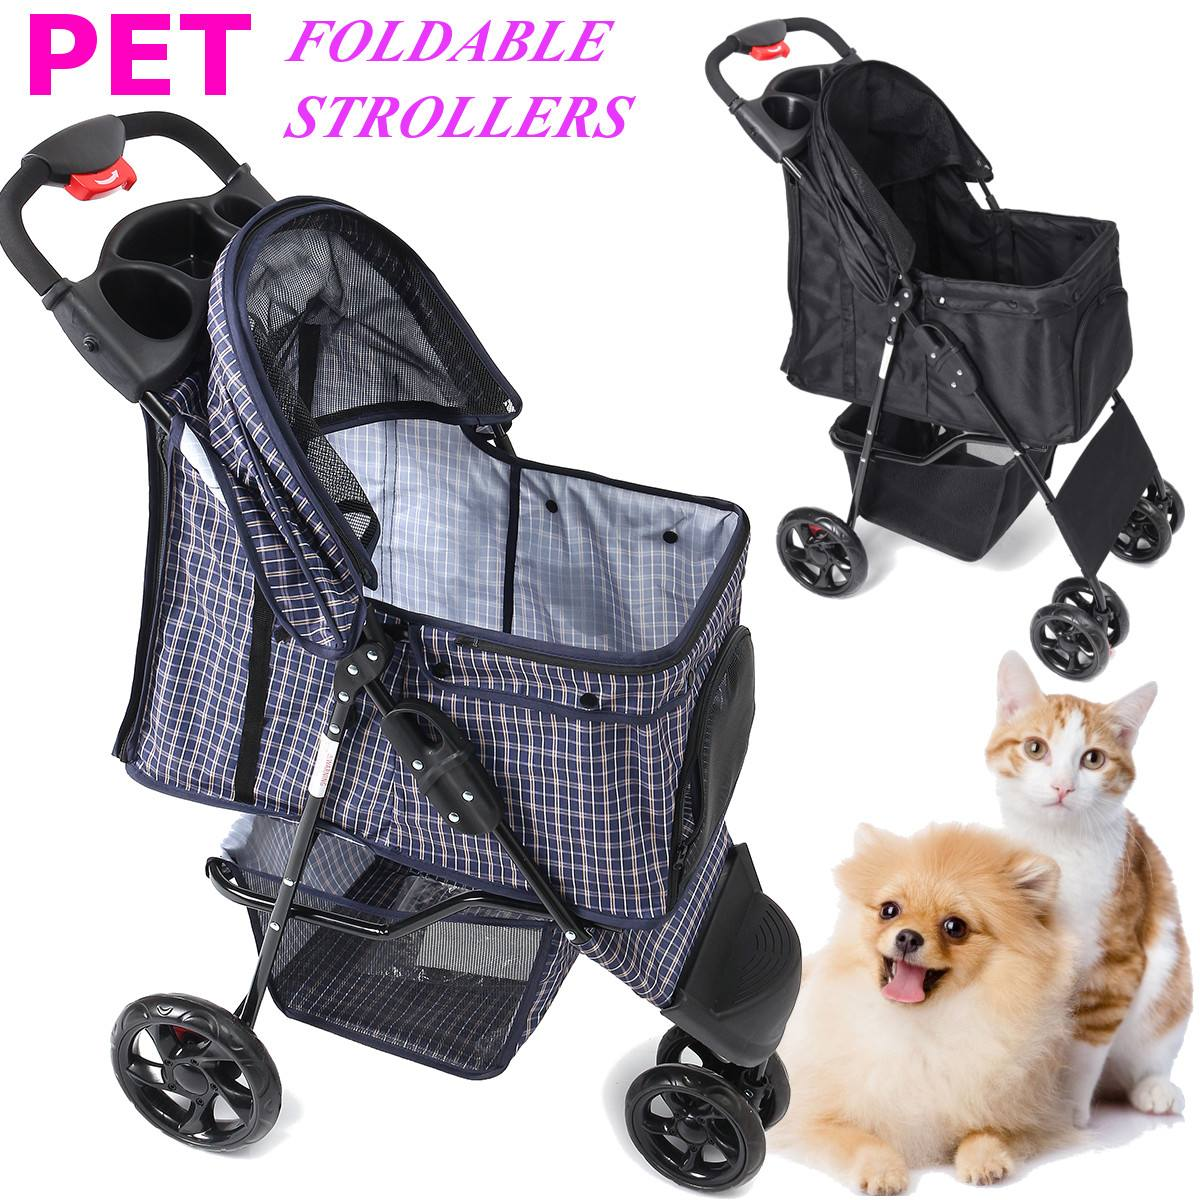 2 Colors Foldable Pet Stroller Dog Cat Puppy Sitting Lying Pushchair Stroller Cart Outdoor Lightweight Travel Carrier Pram2 Colors Foldable Pet Stroller Dog Cat Puppy Sitting Lying Pushchair Stroller Cart Outdoor Lightweight Travel Carrier Pram